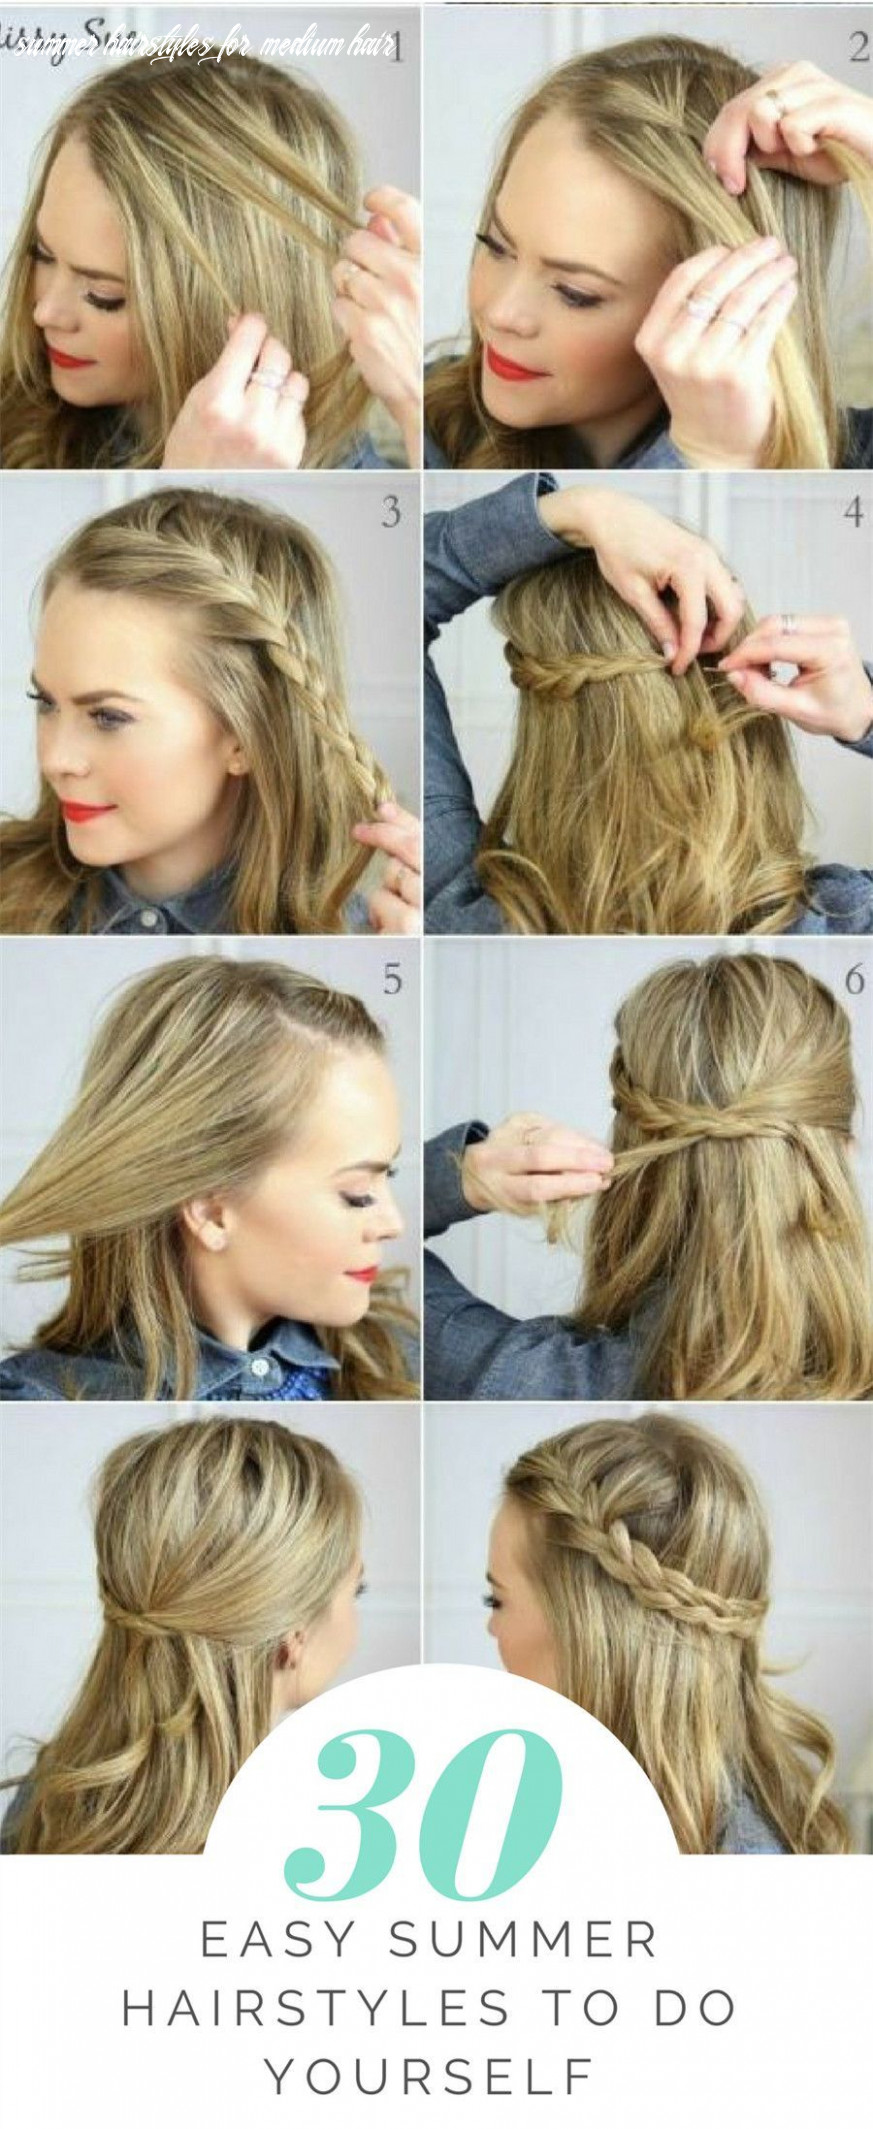 Best hairstyle of 9 | cute everyday hairstyles, easy hairstyles